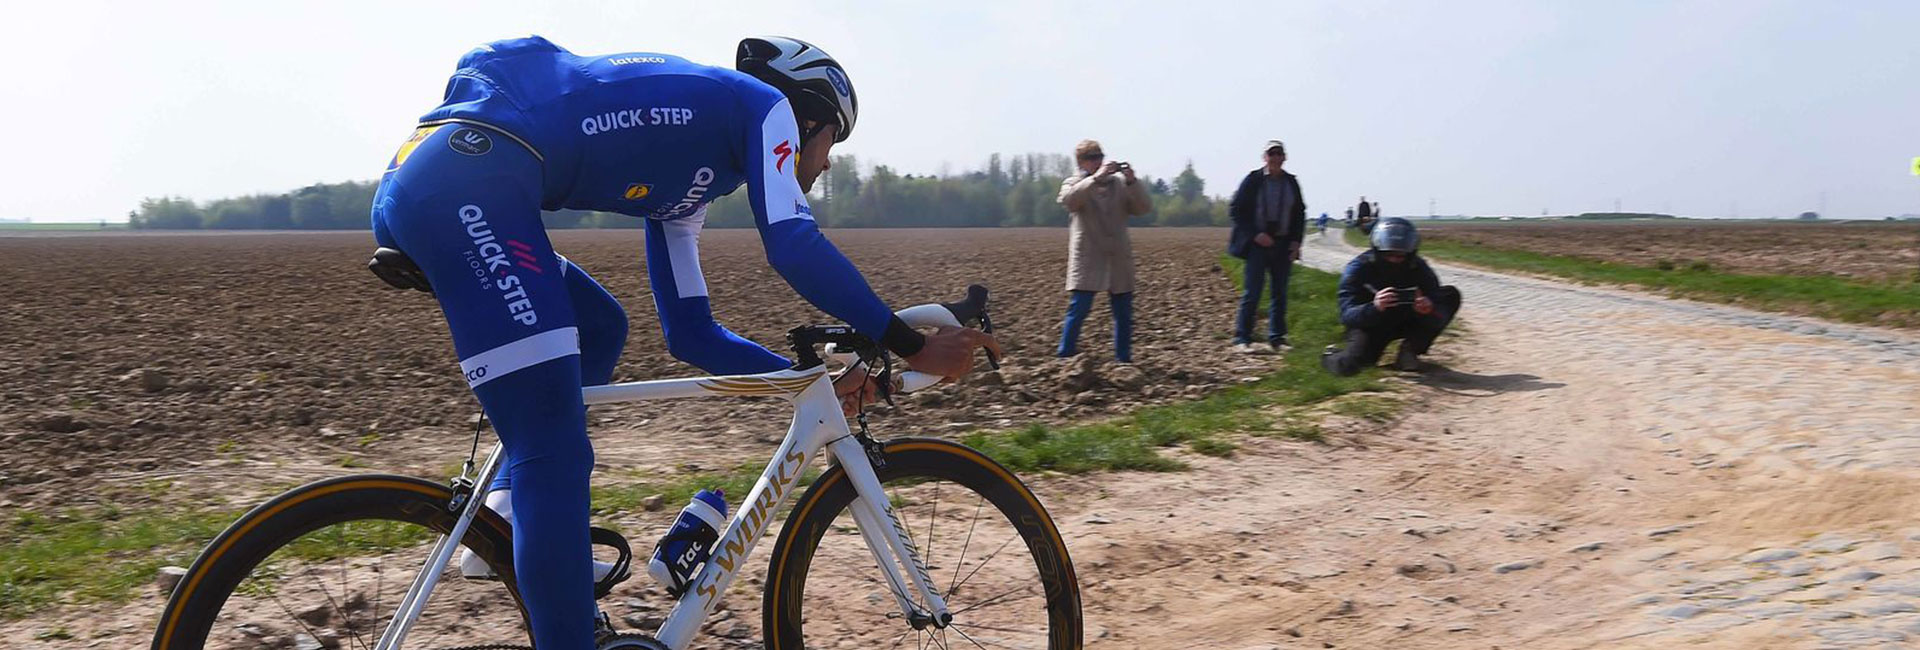 PARIGI ROUBAIX 2018 CON QUICK-STEP FLOORS - BIKE DIVISION VIP PRO EXPERIENCE - foto copyright TdwSport.com /